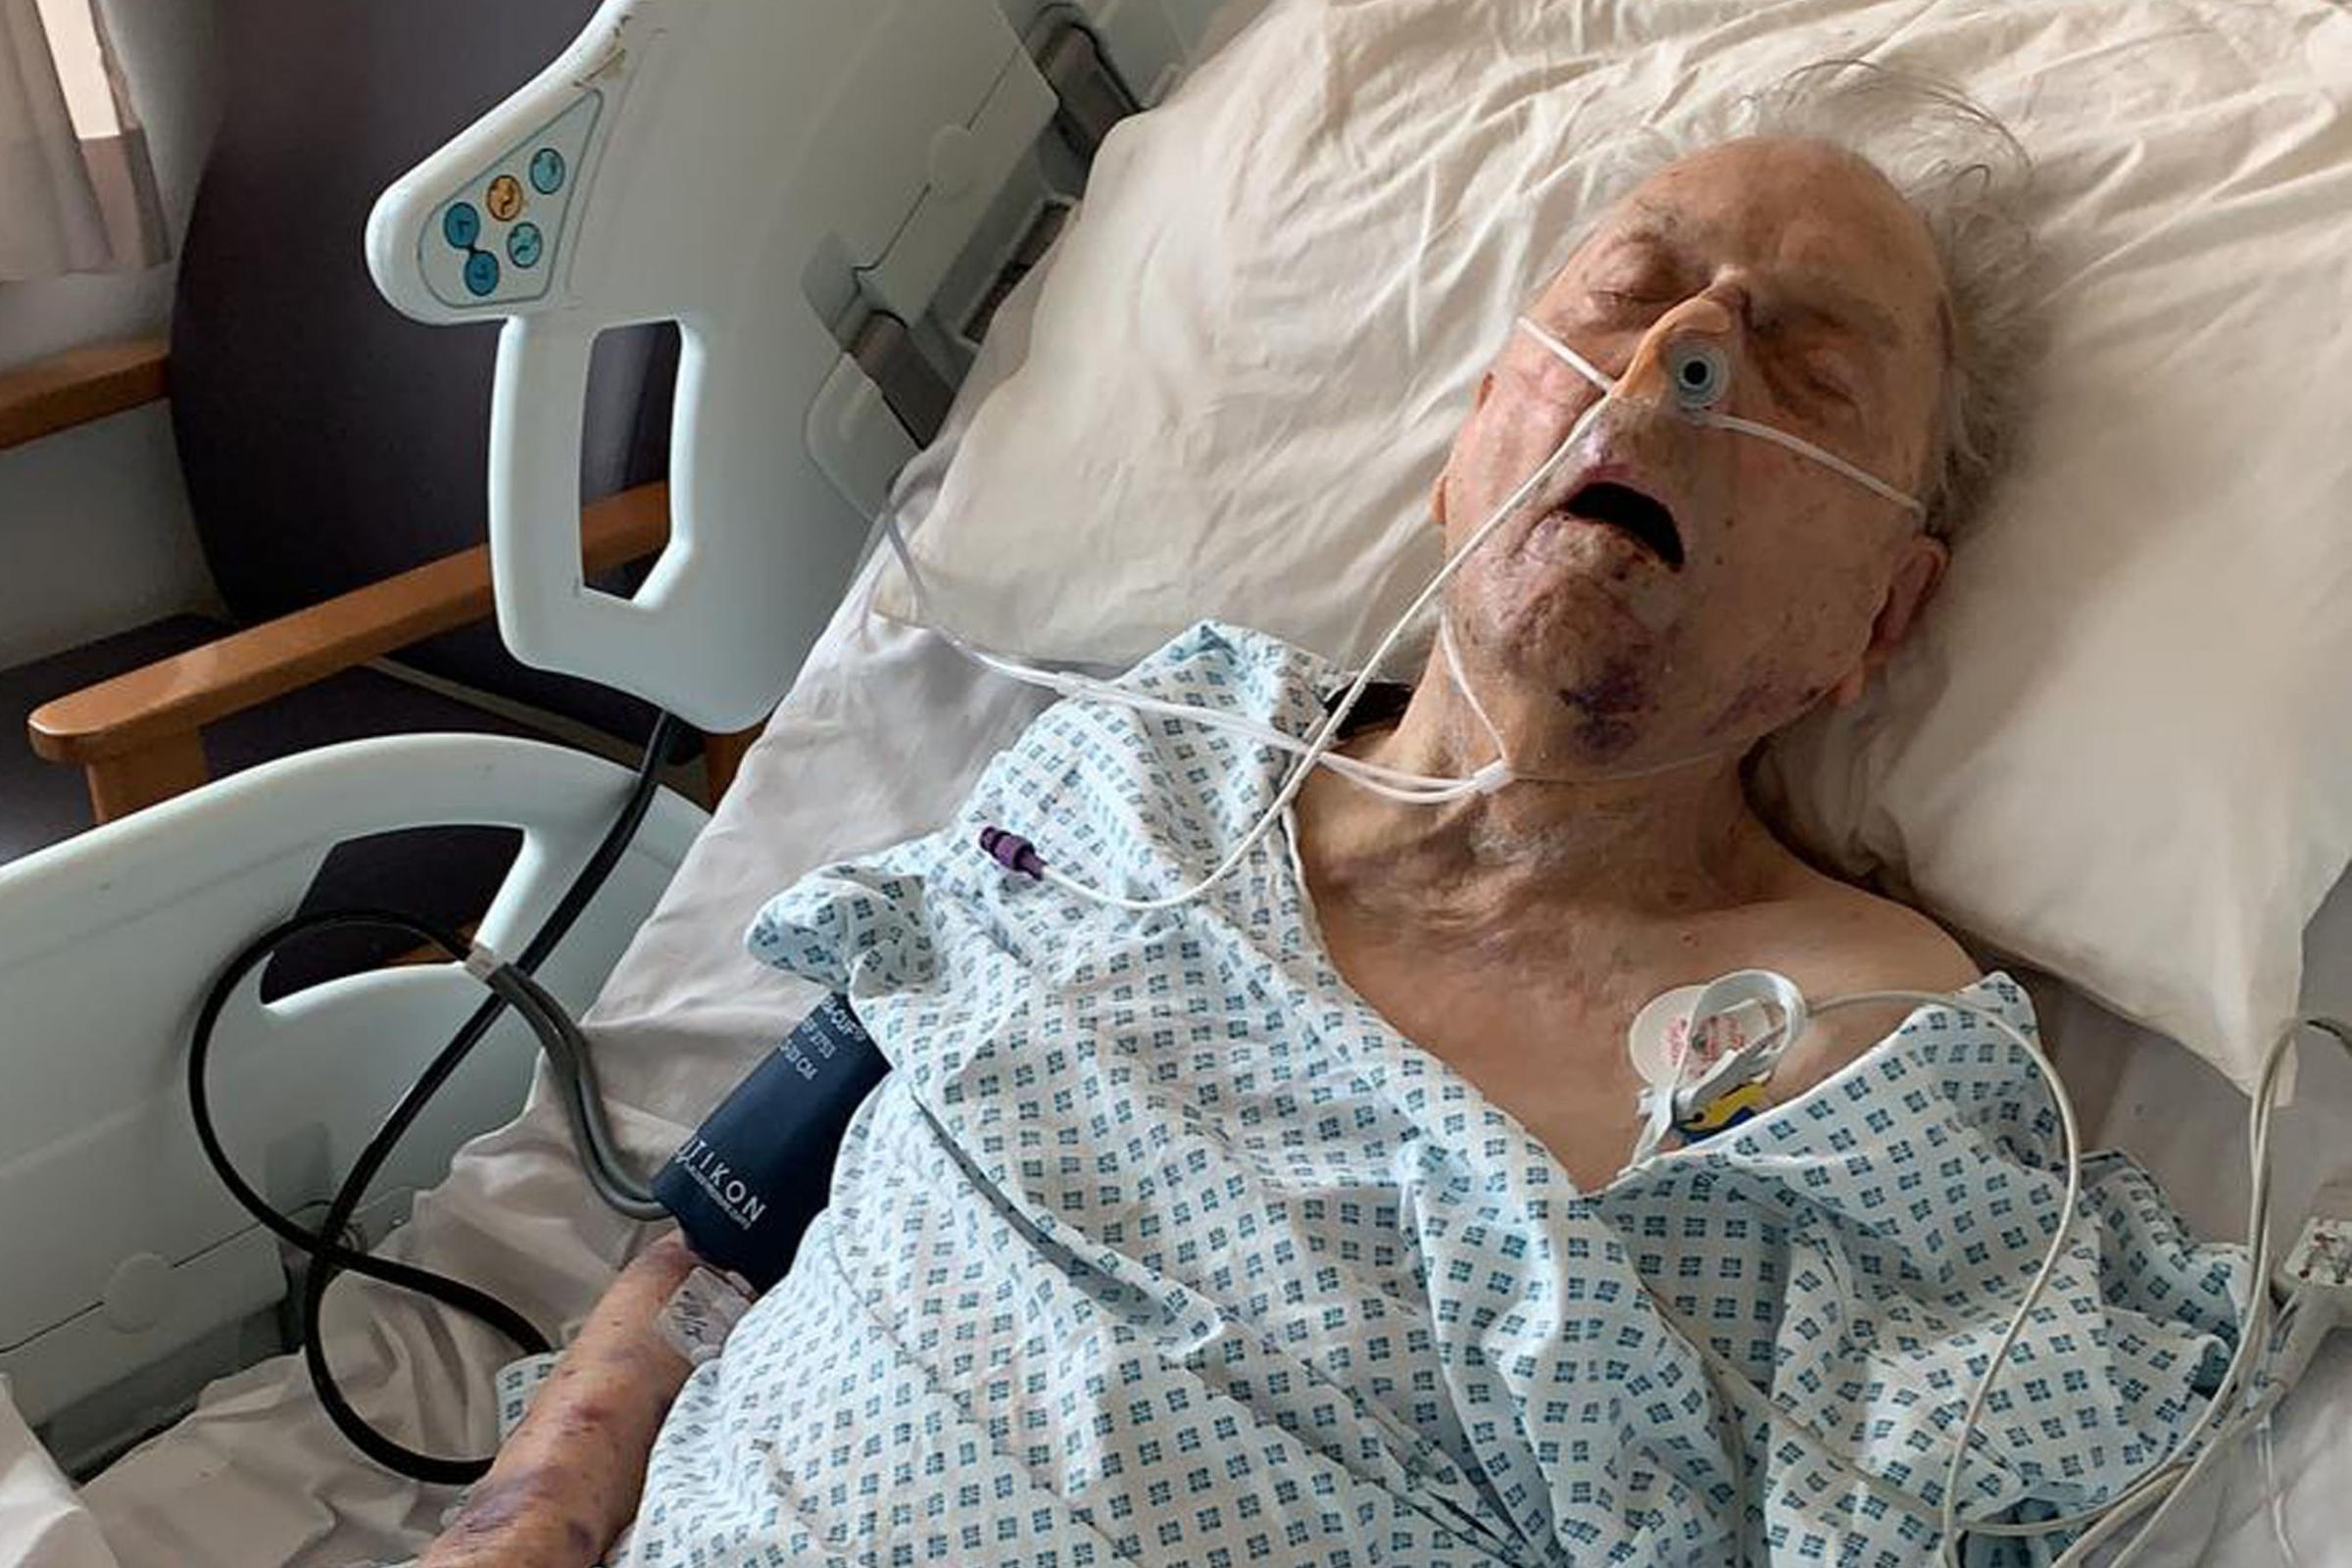 Peter Gouldstone in a hospital bed